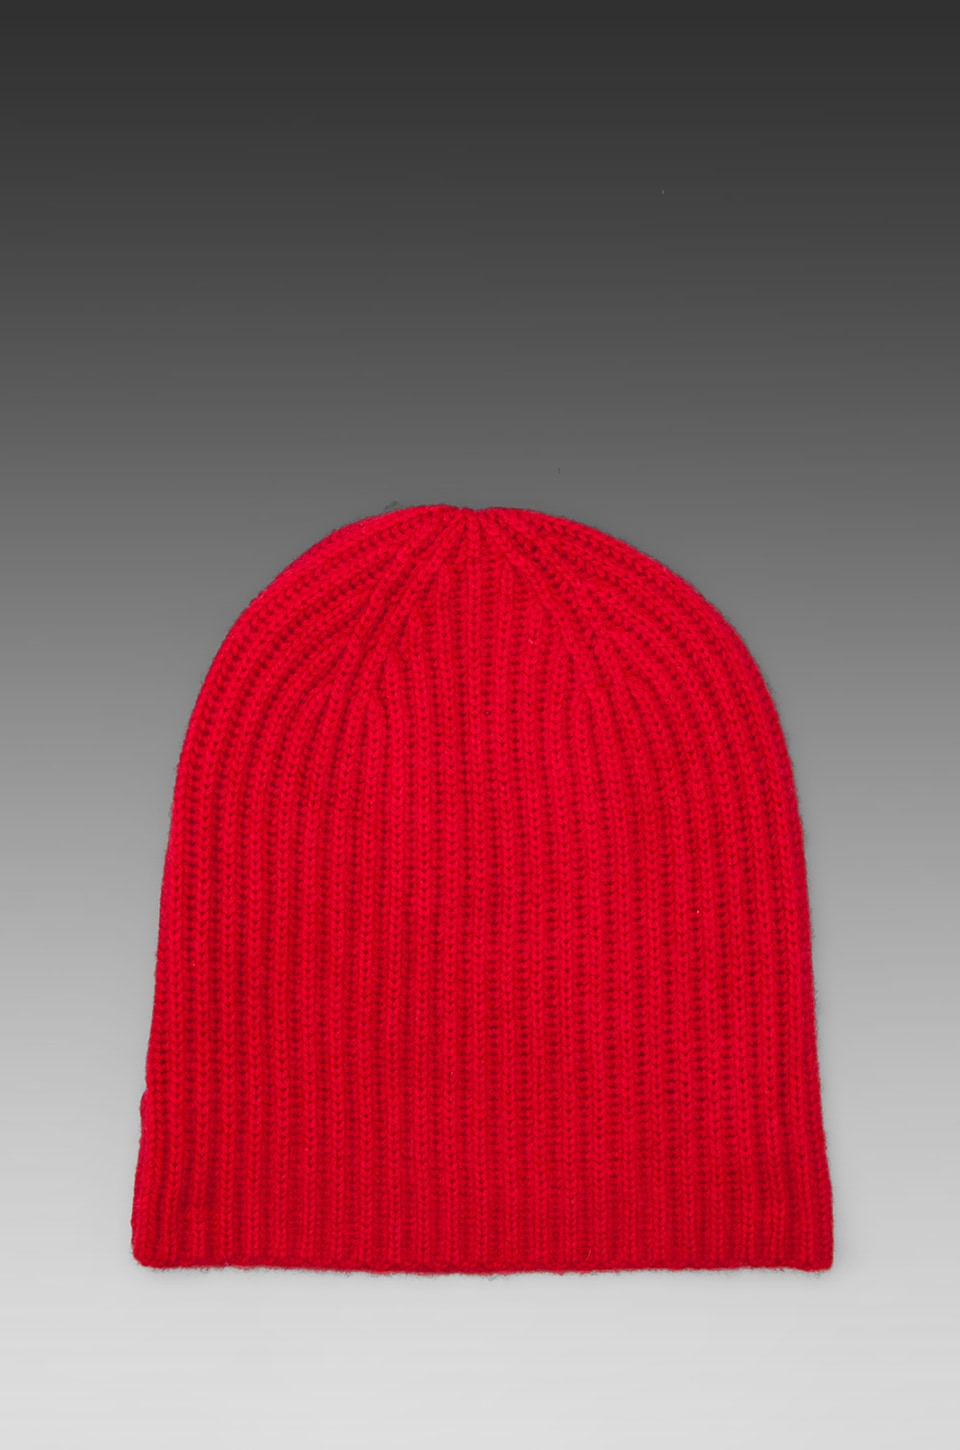 Steven Alan Cashmere Beanie in Red